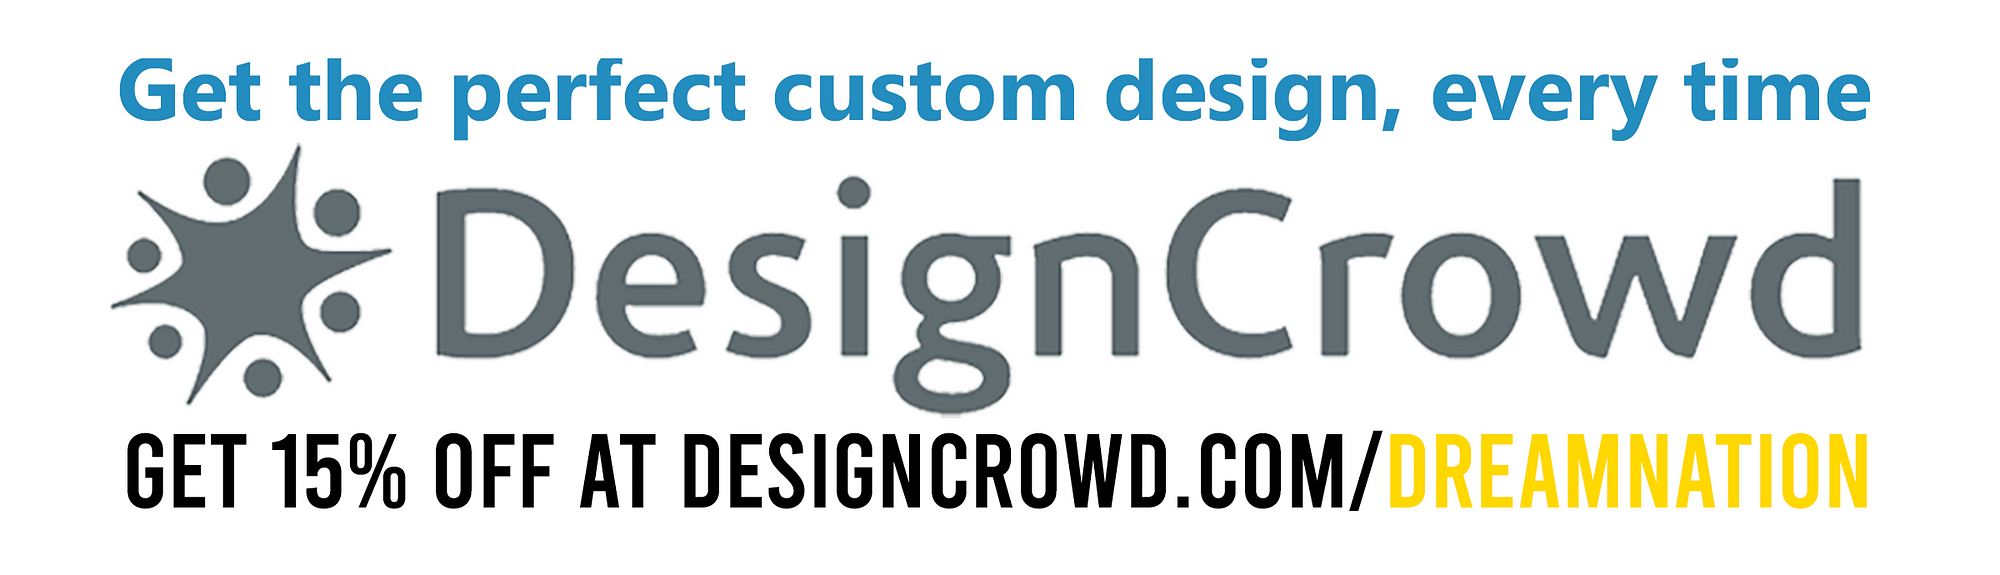 Get 15% off at Designcrowd today!